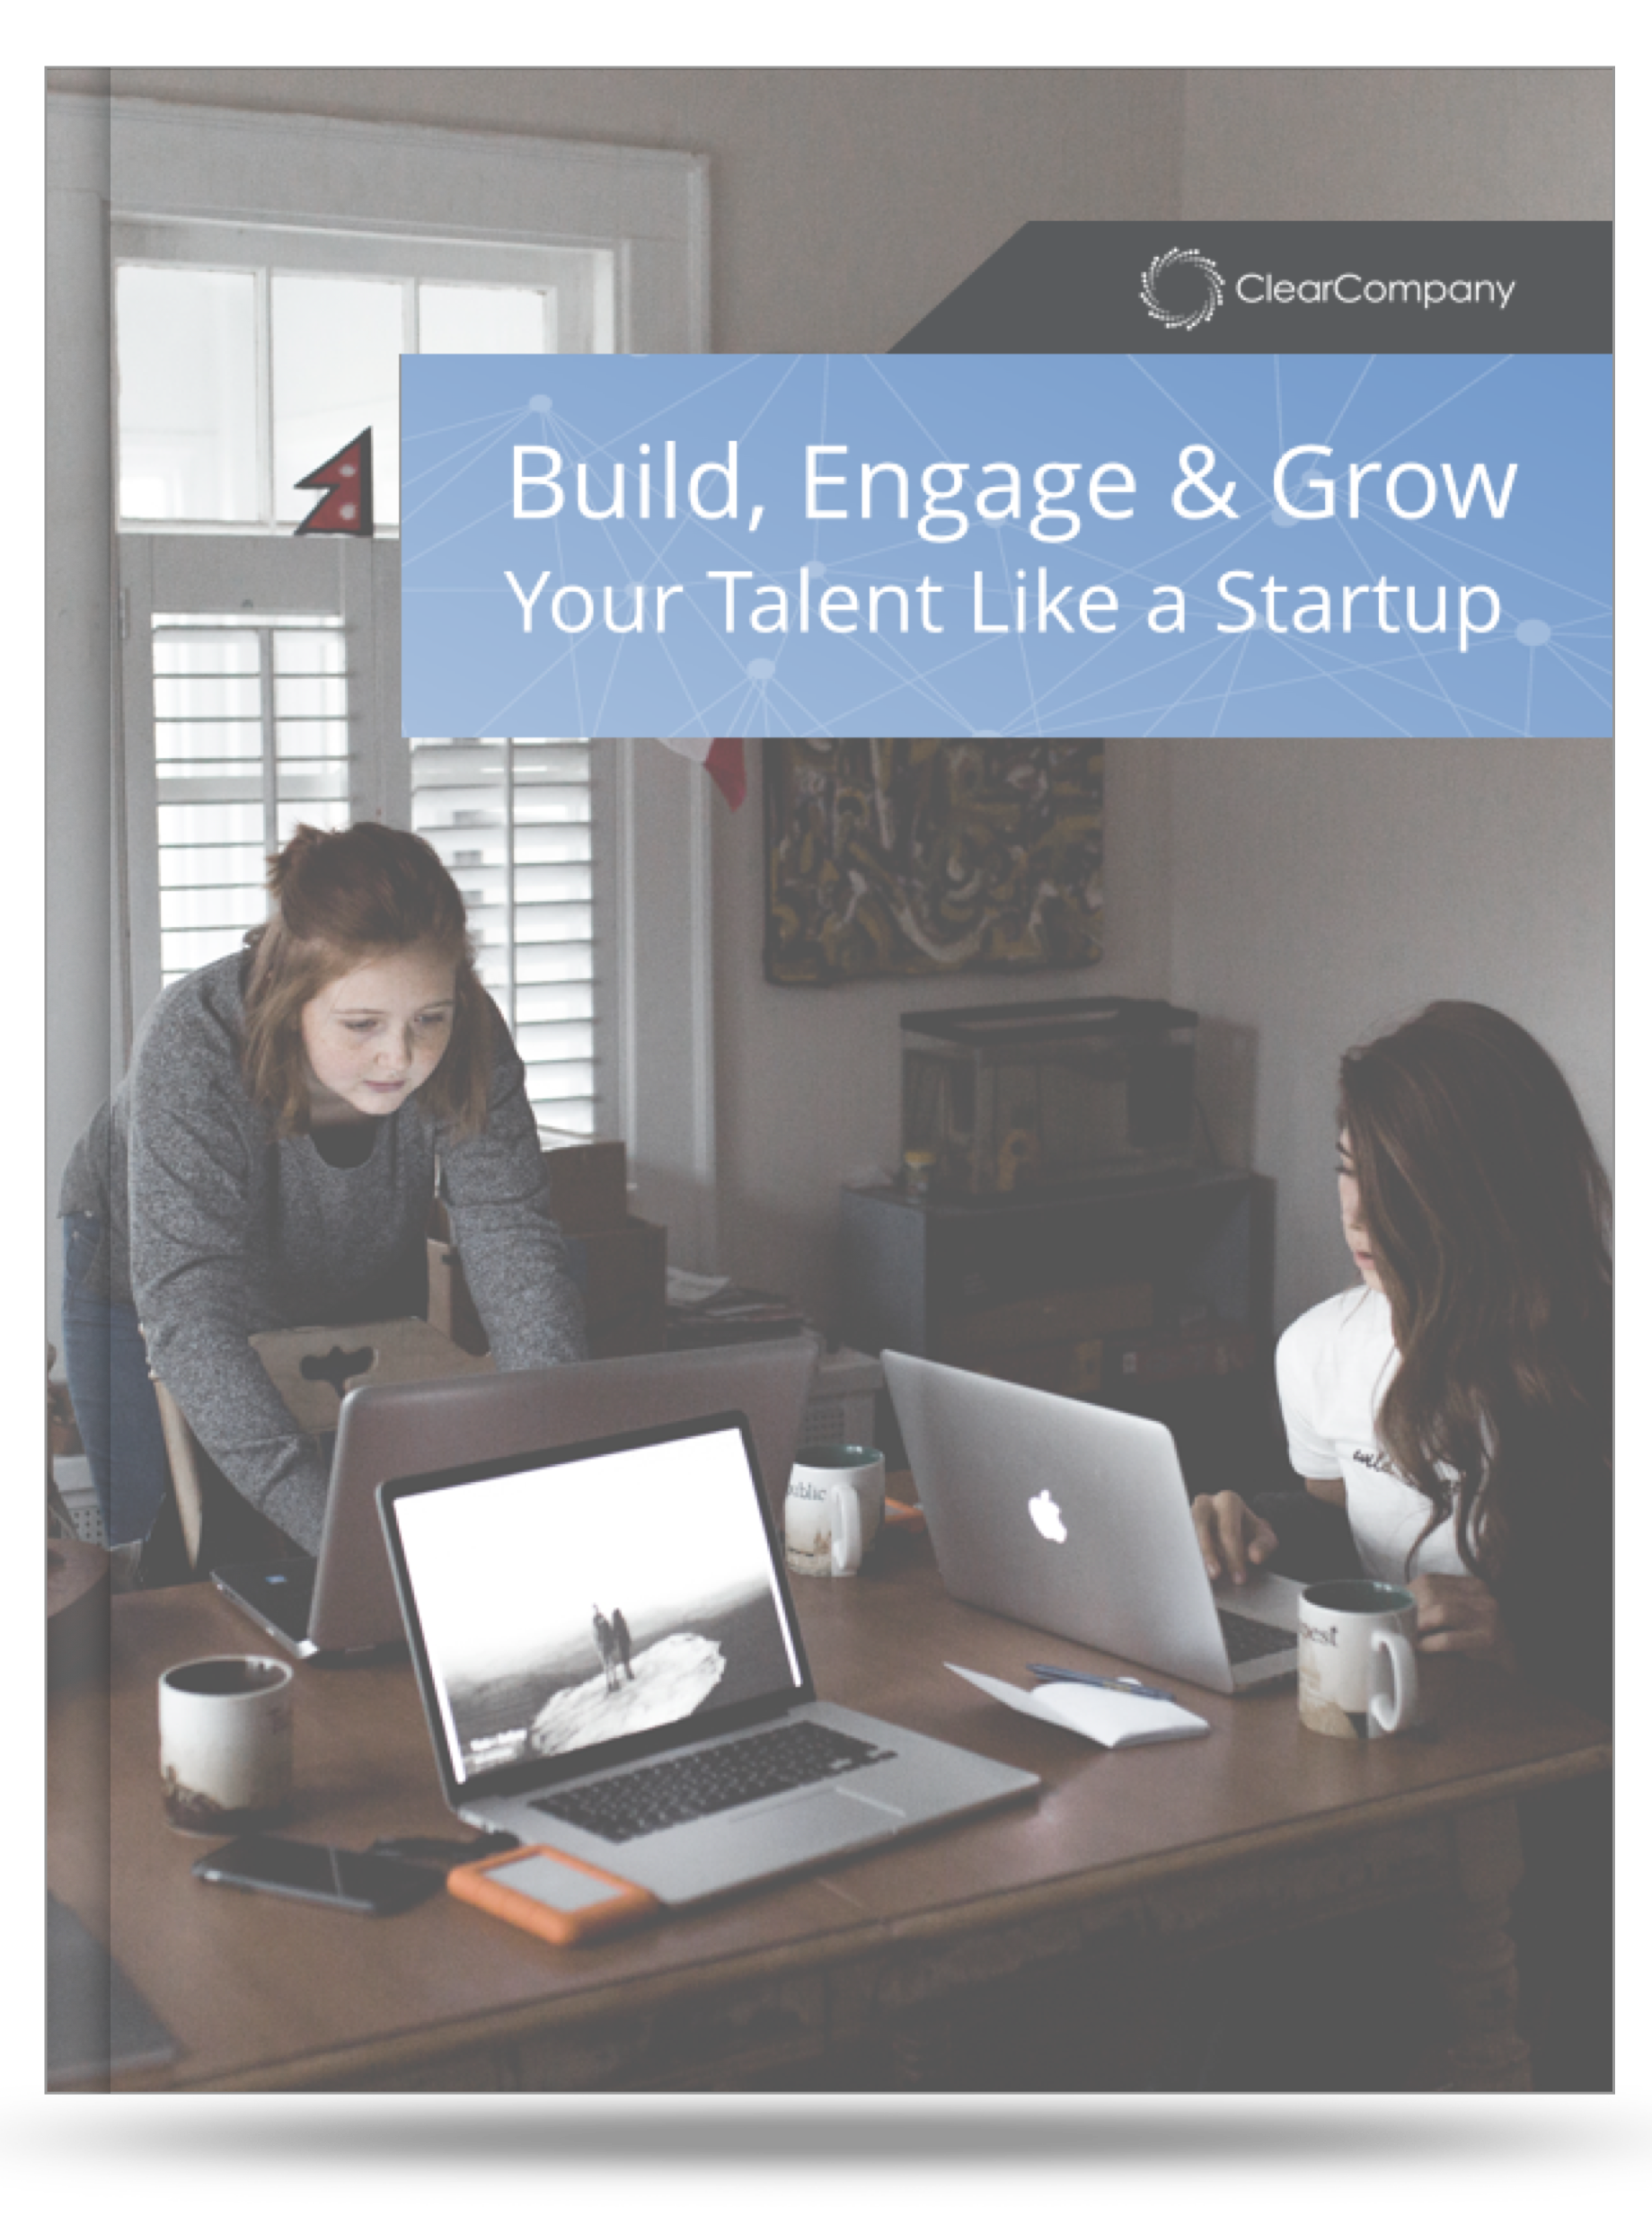 How-to-Build-Engage-Grow-Your-Talent-Like-a-Startup-Whitepaper.png